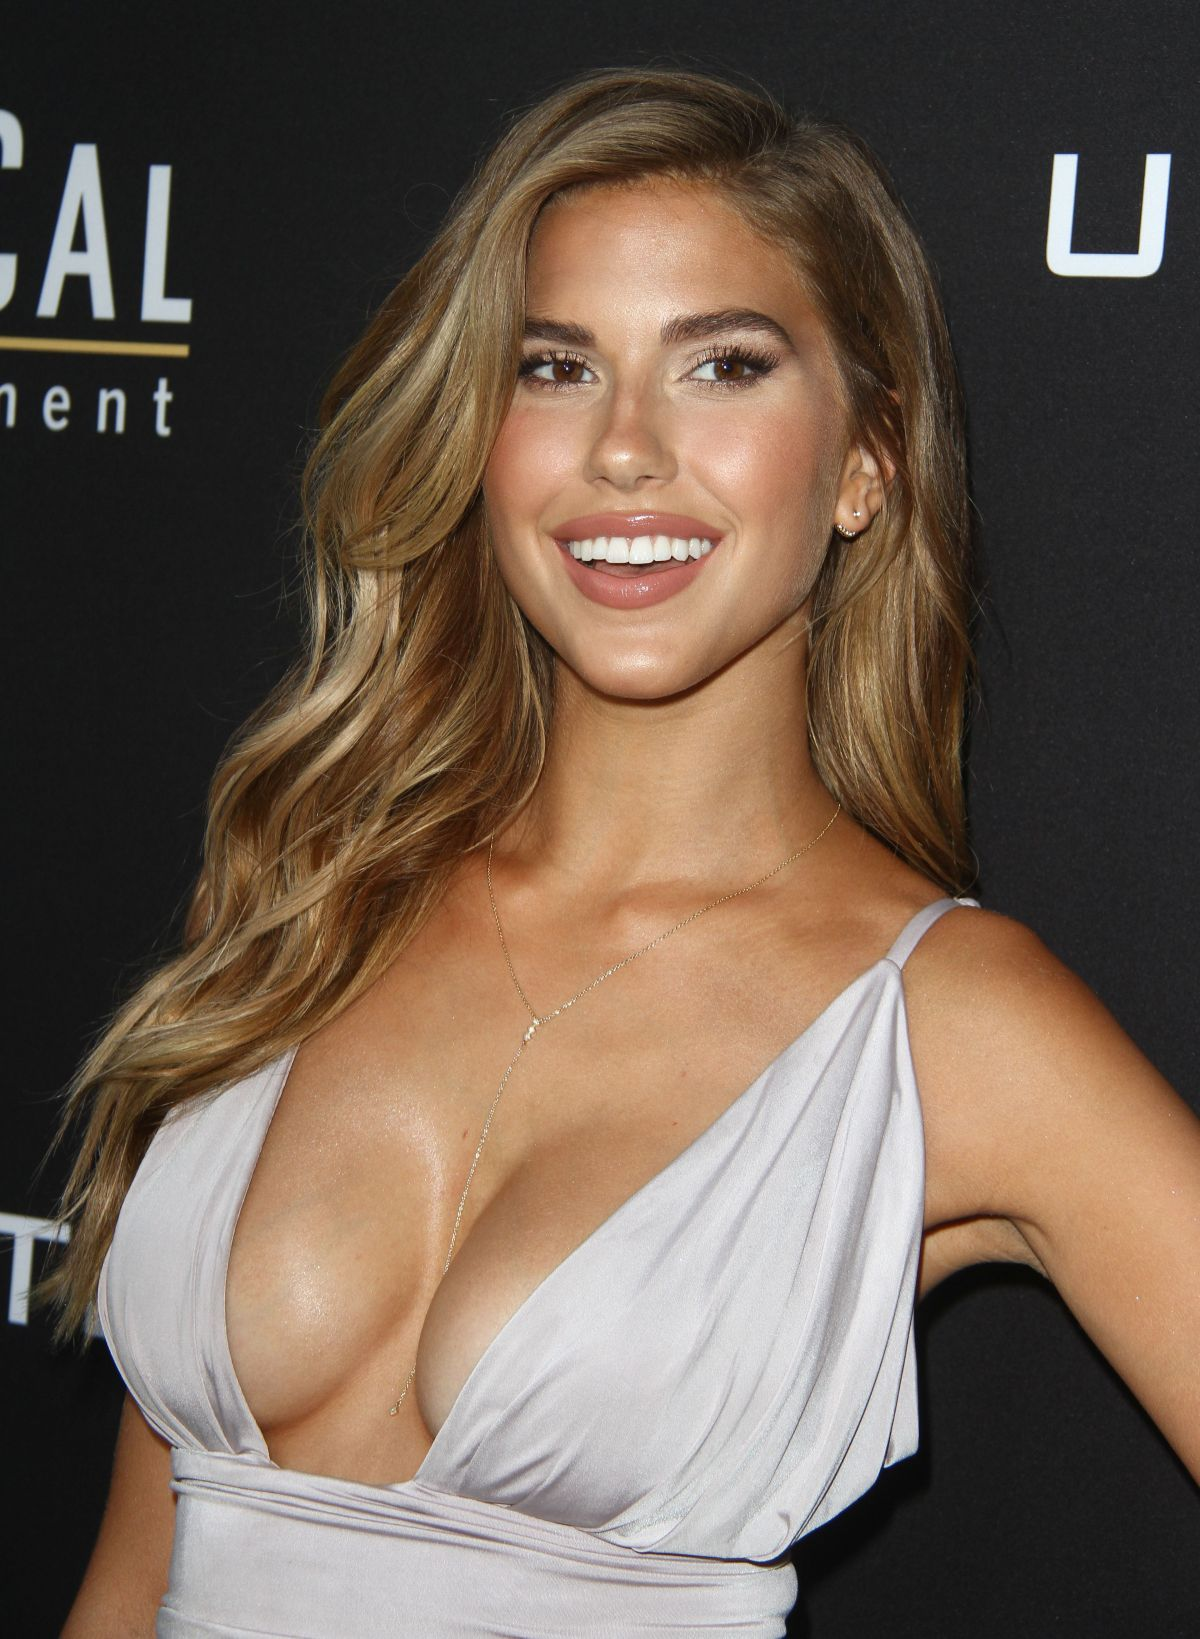 Michelle Collins Fakes Simple kara del toro at undrafted premiere in hollywood actress kara del